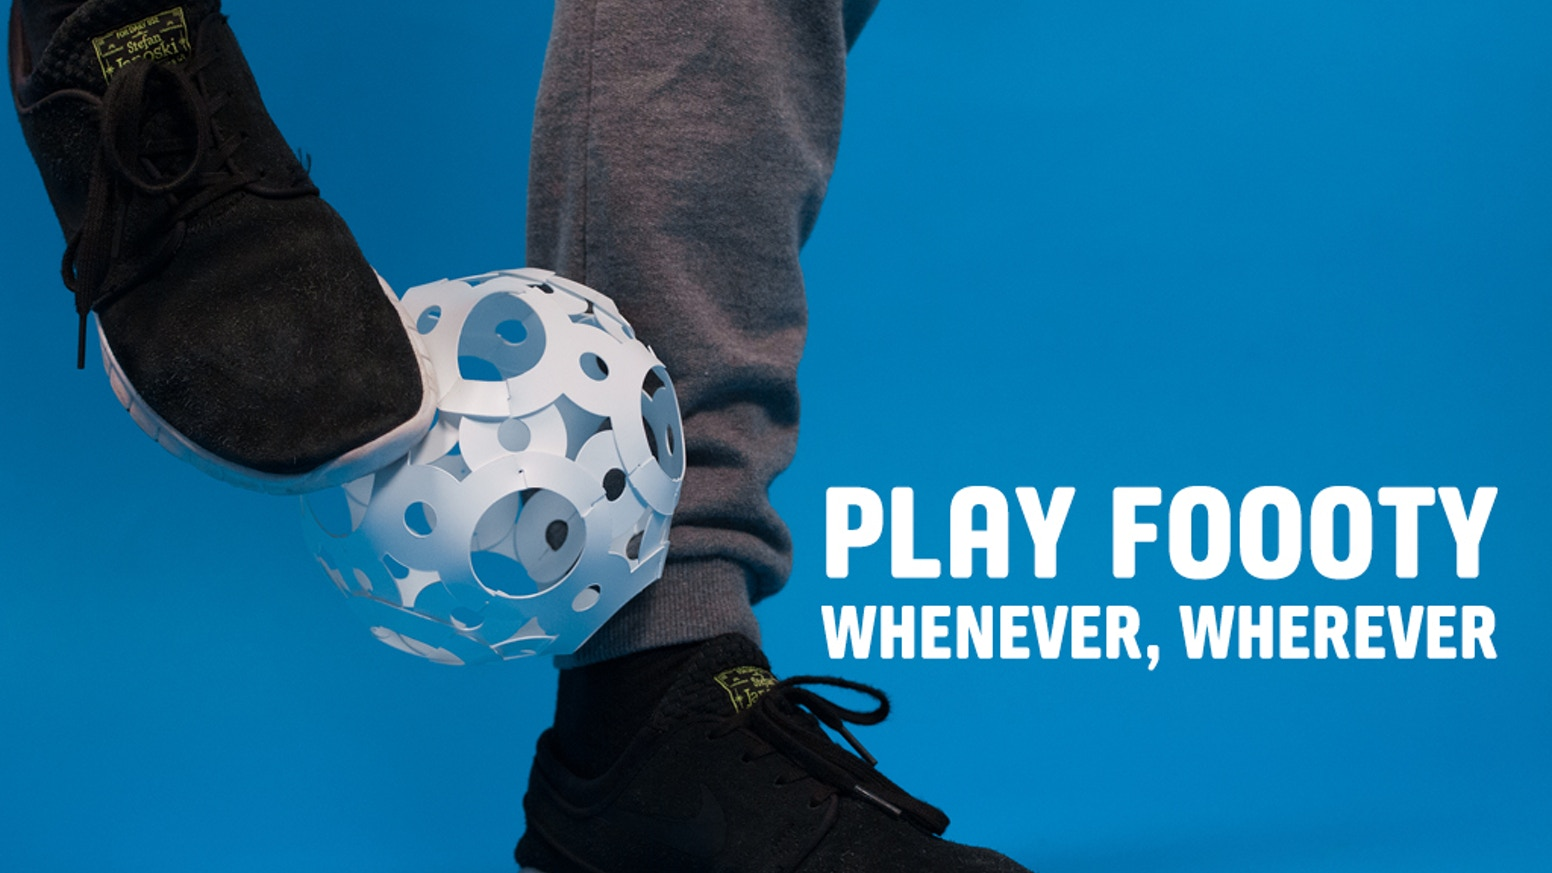 This ball fits every pocket and enables you to play anywhere you want. Fun to make and great to kick, whatever your age. Let's PLAY!